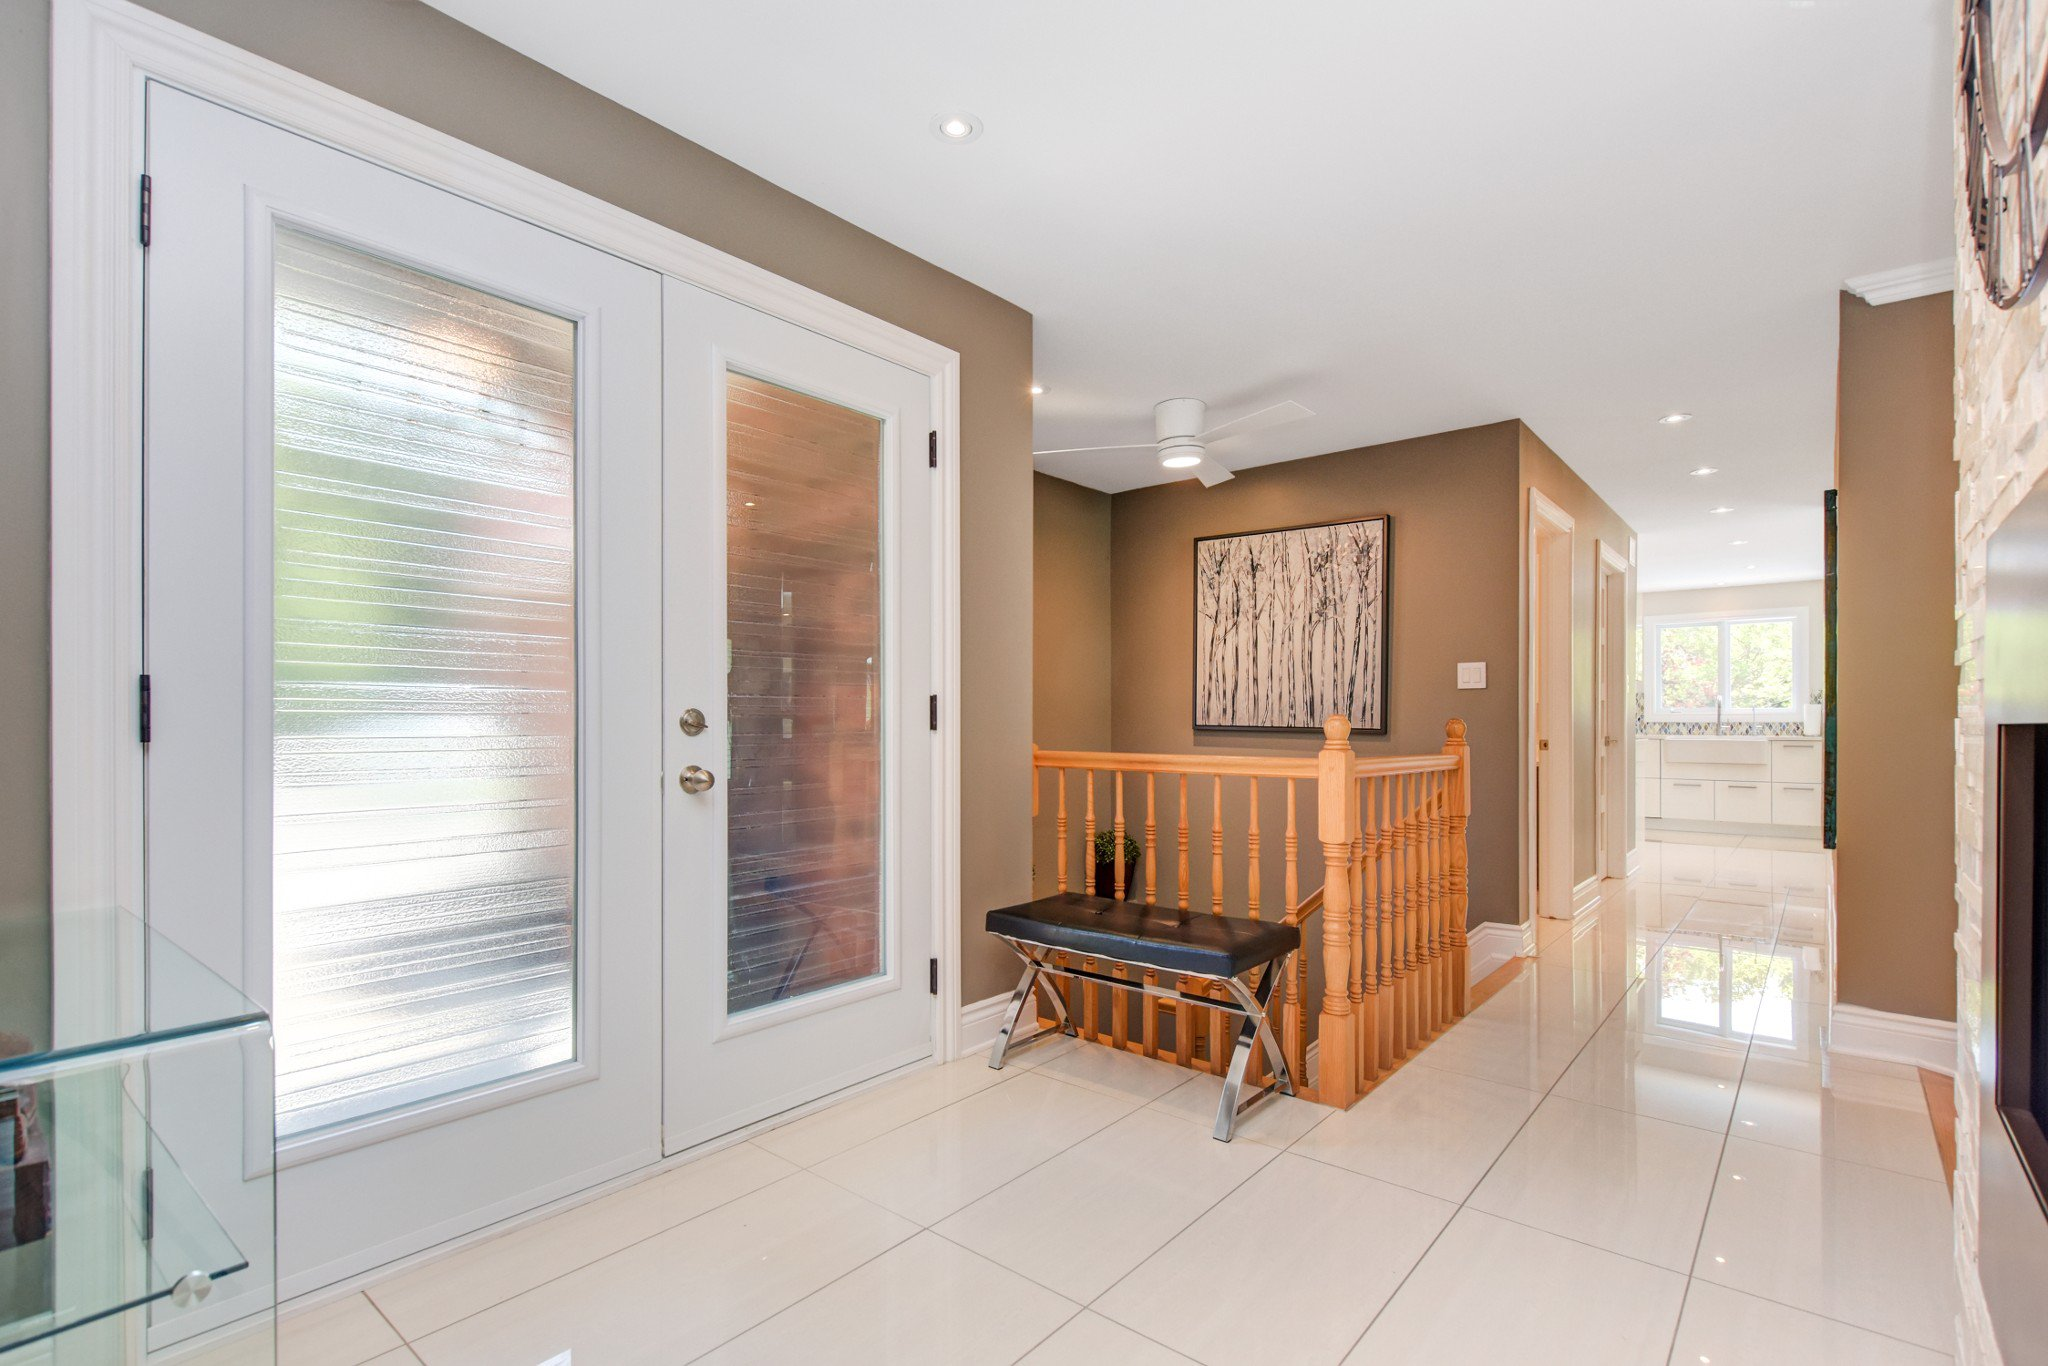 Photo 8: Photos: 1490 REINDEER WAY.: Greely House for sale (Ottawa)  : MLS®# 1109530